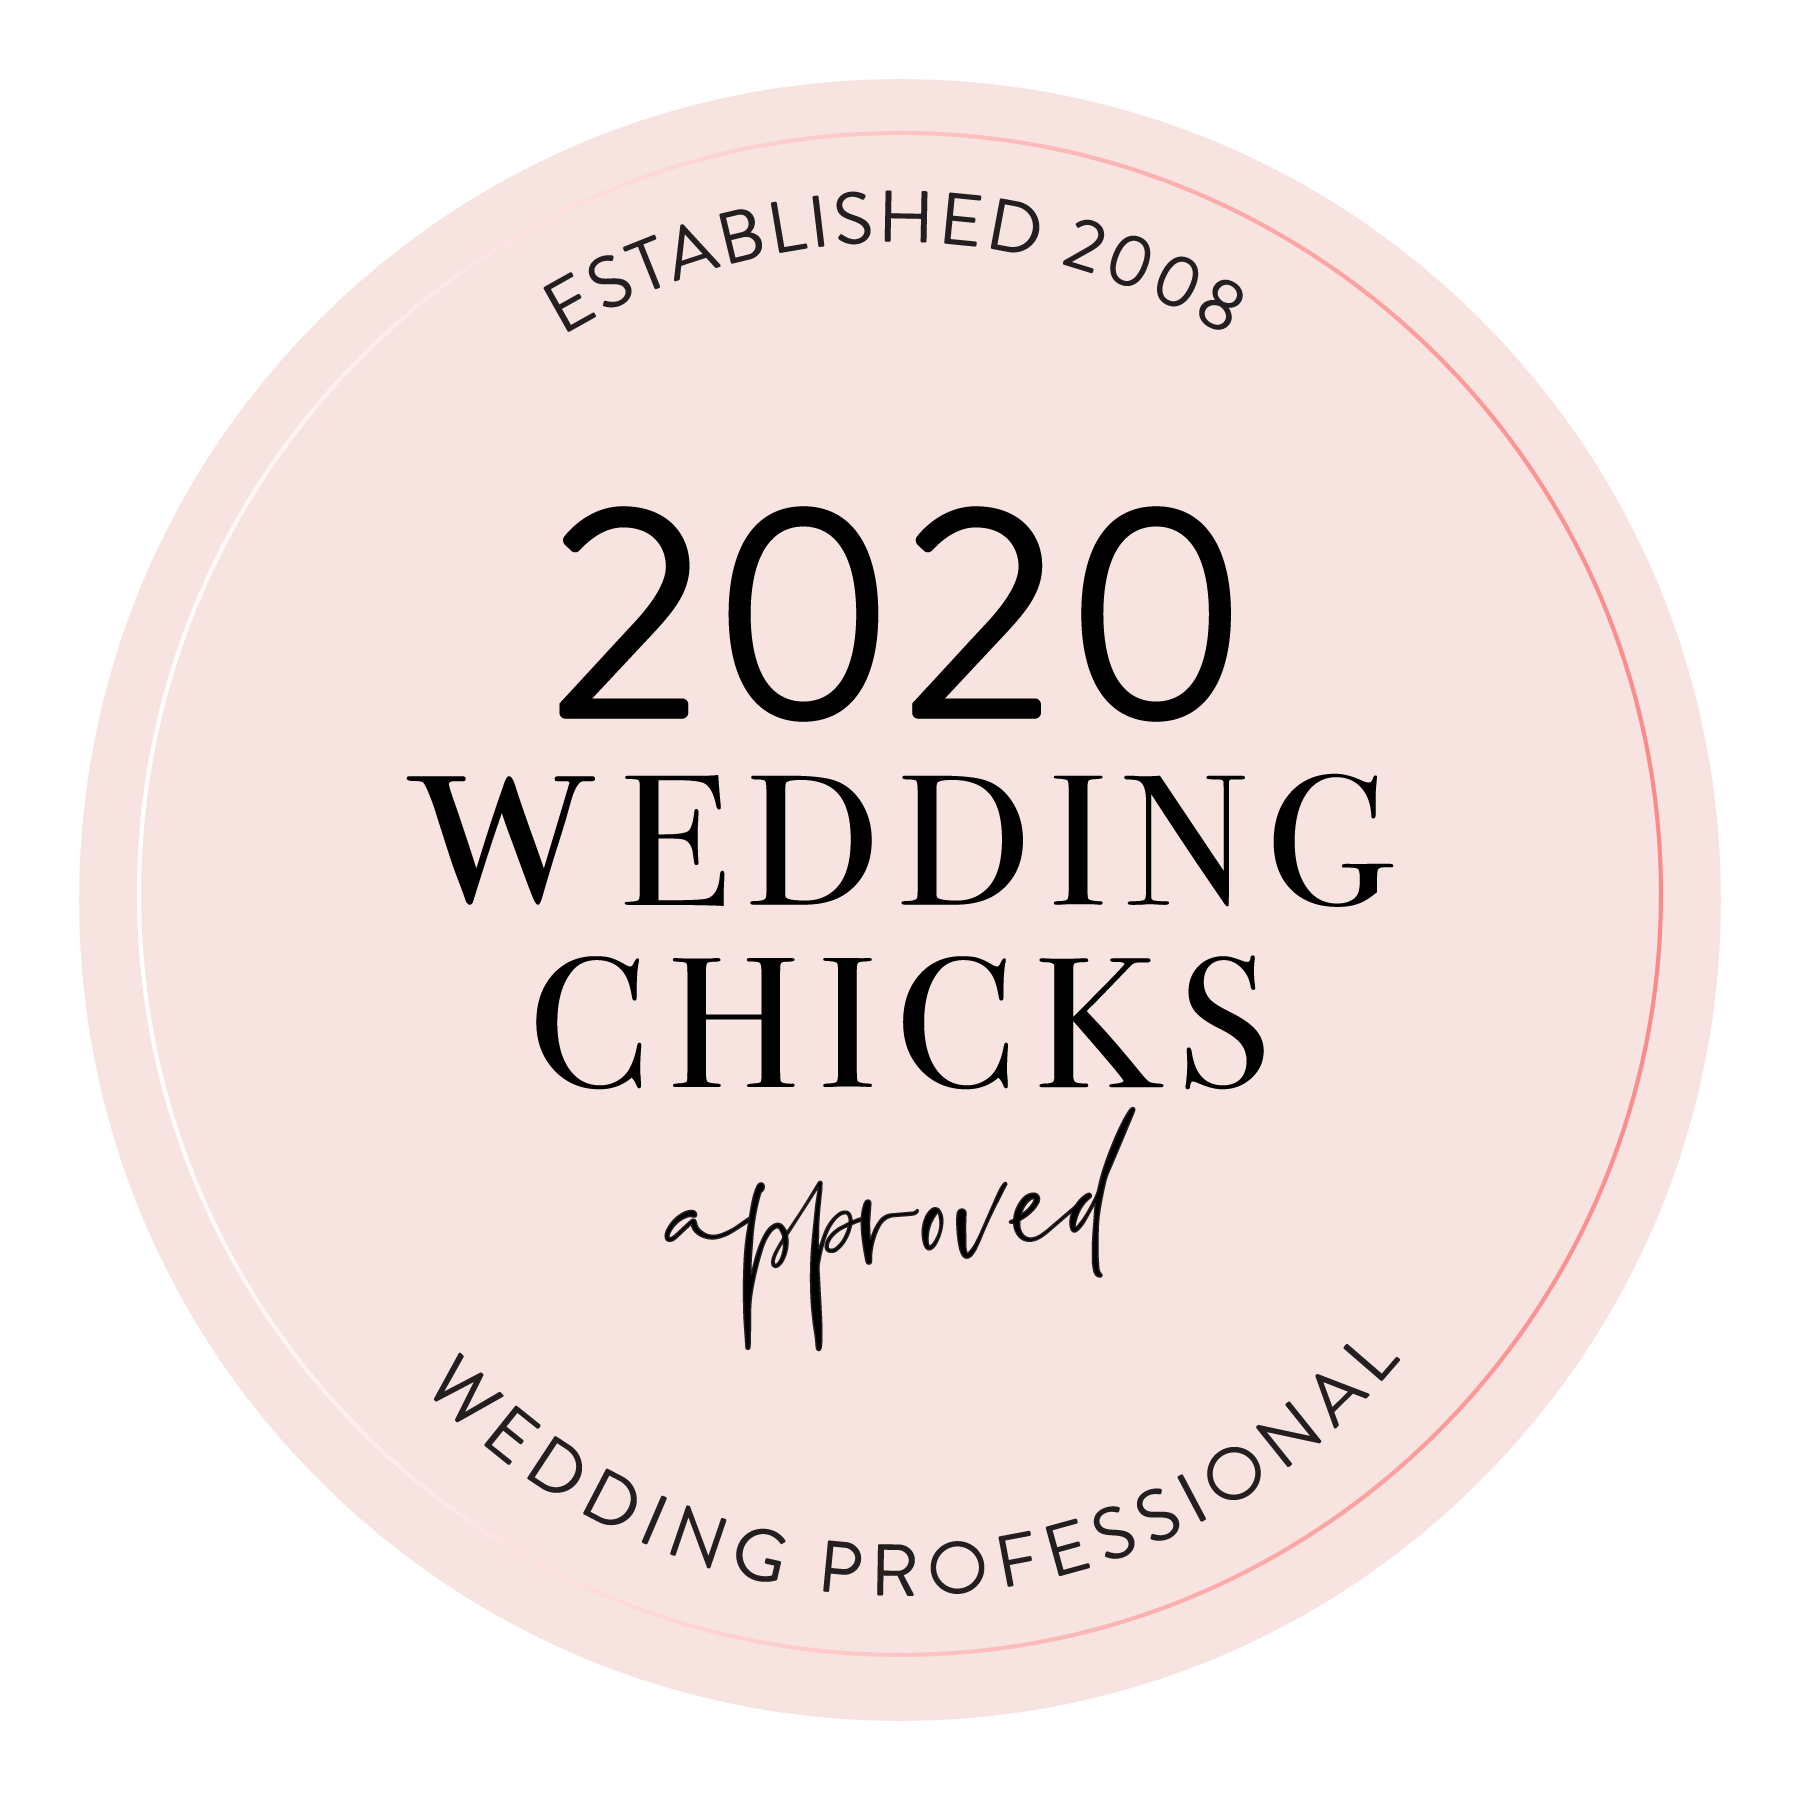 2020 Wedding Chicks Approved